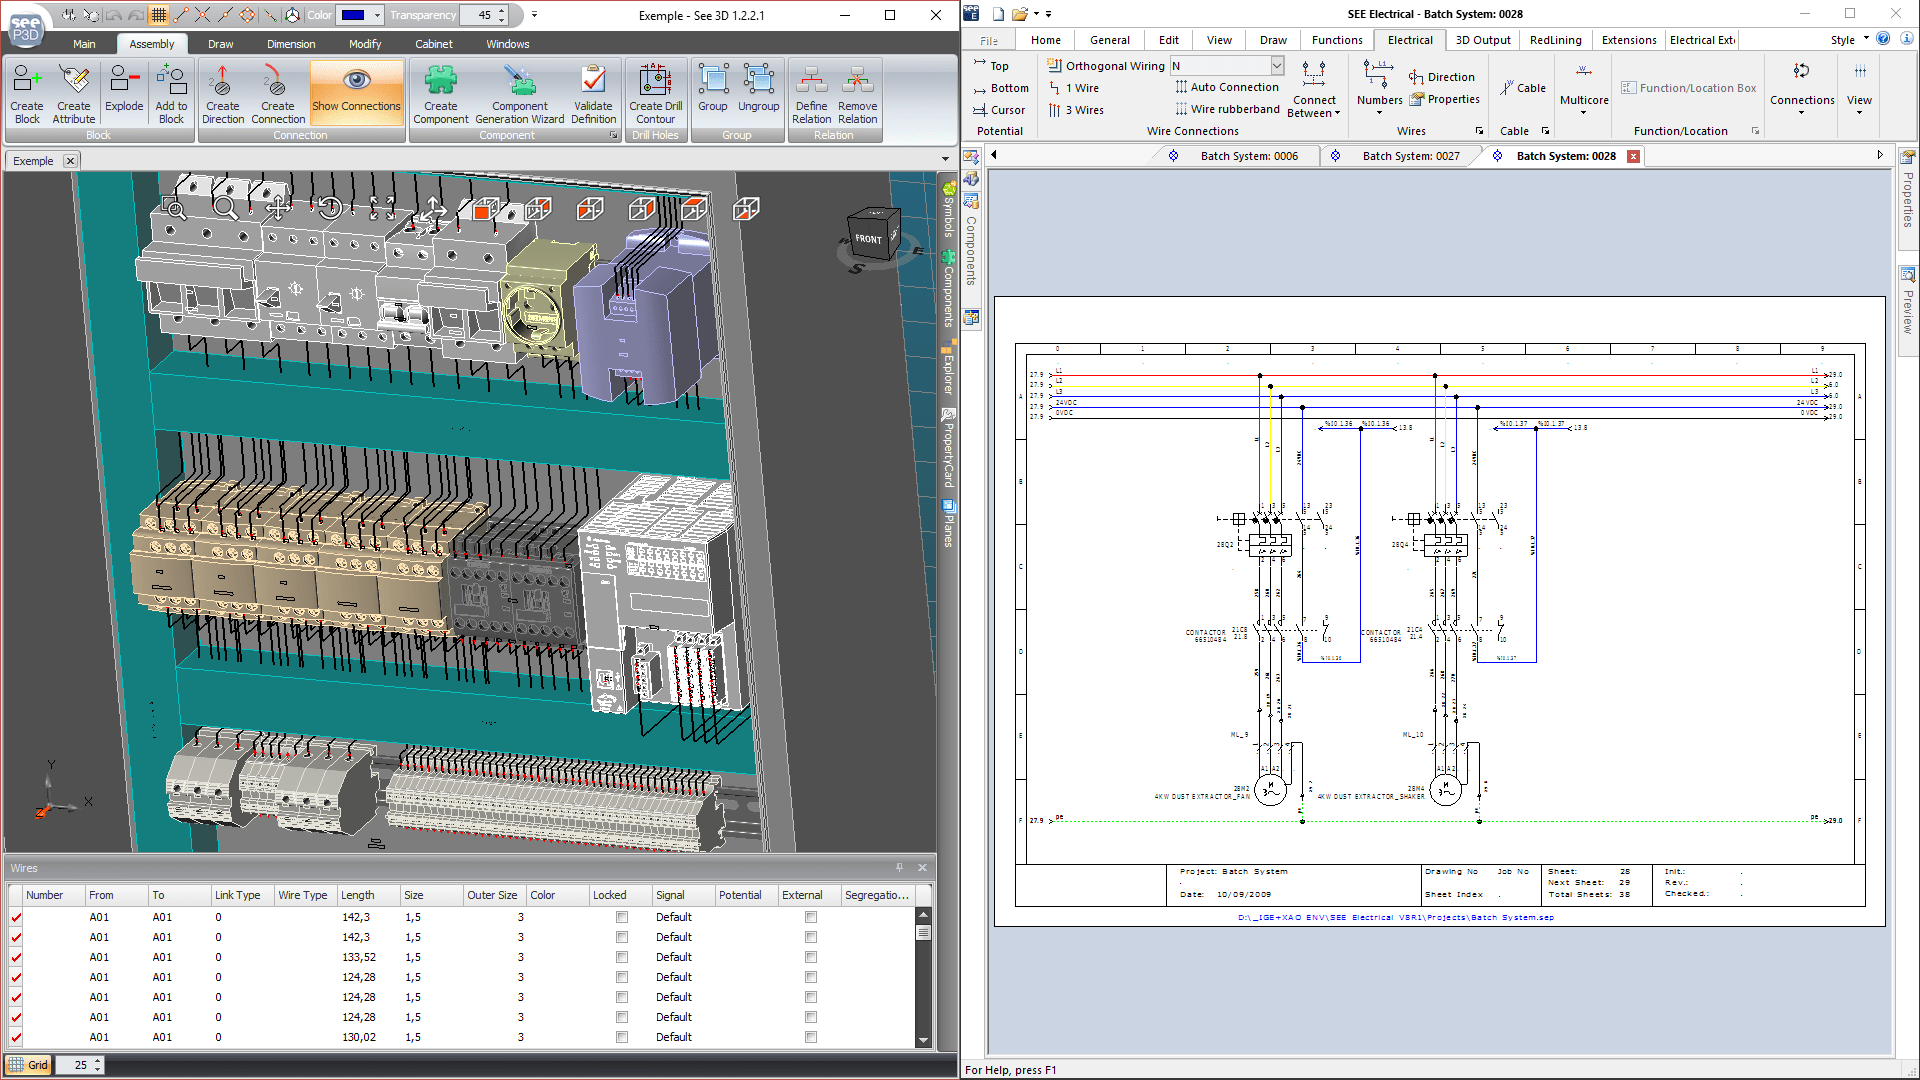 hight resolution of see electrical ieee overview 3d panel capture see elec en png